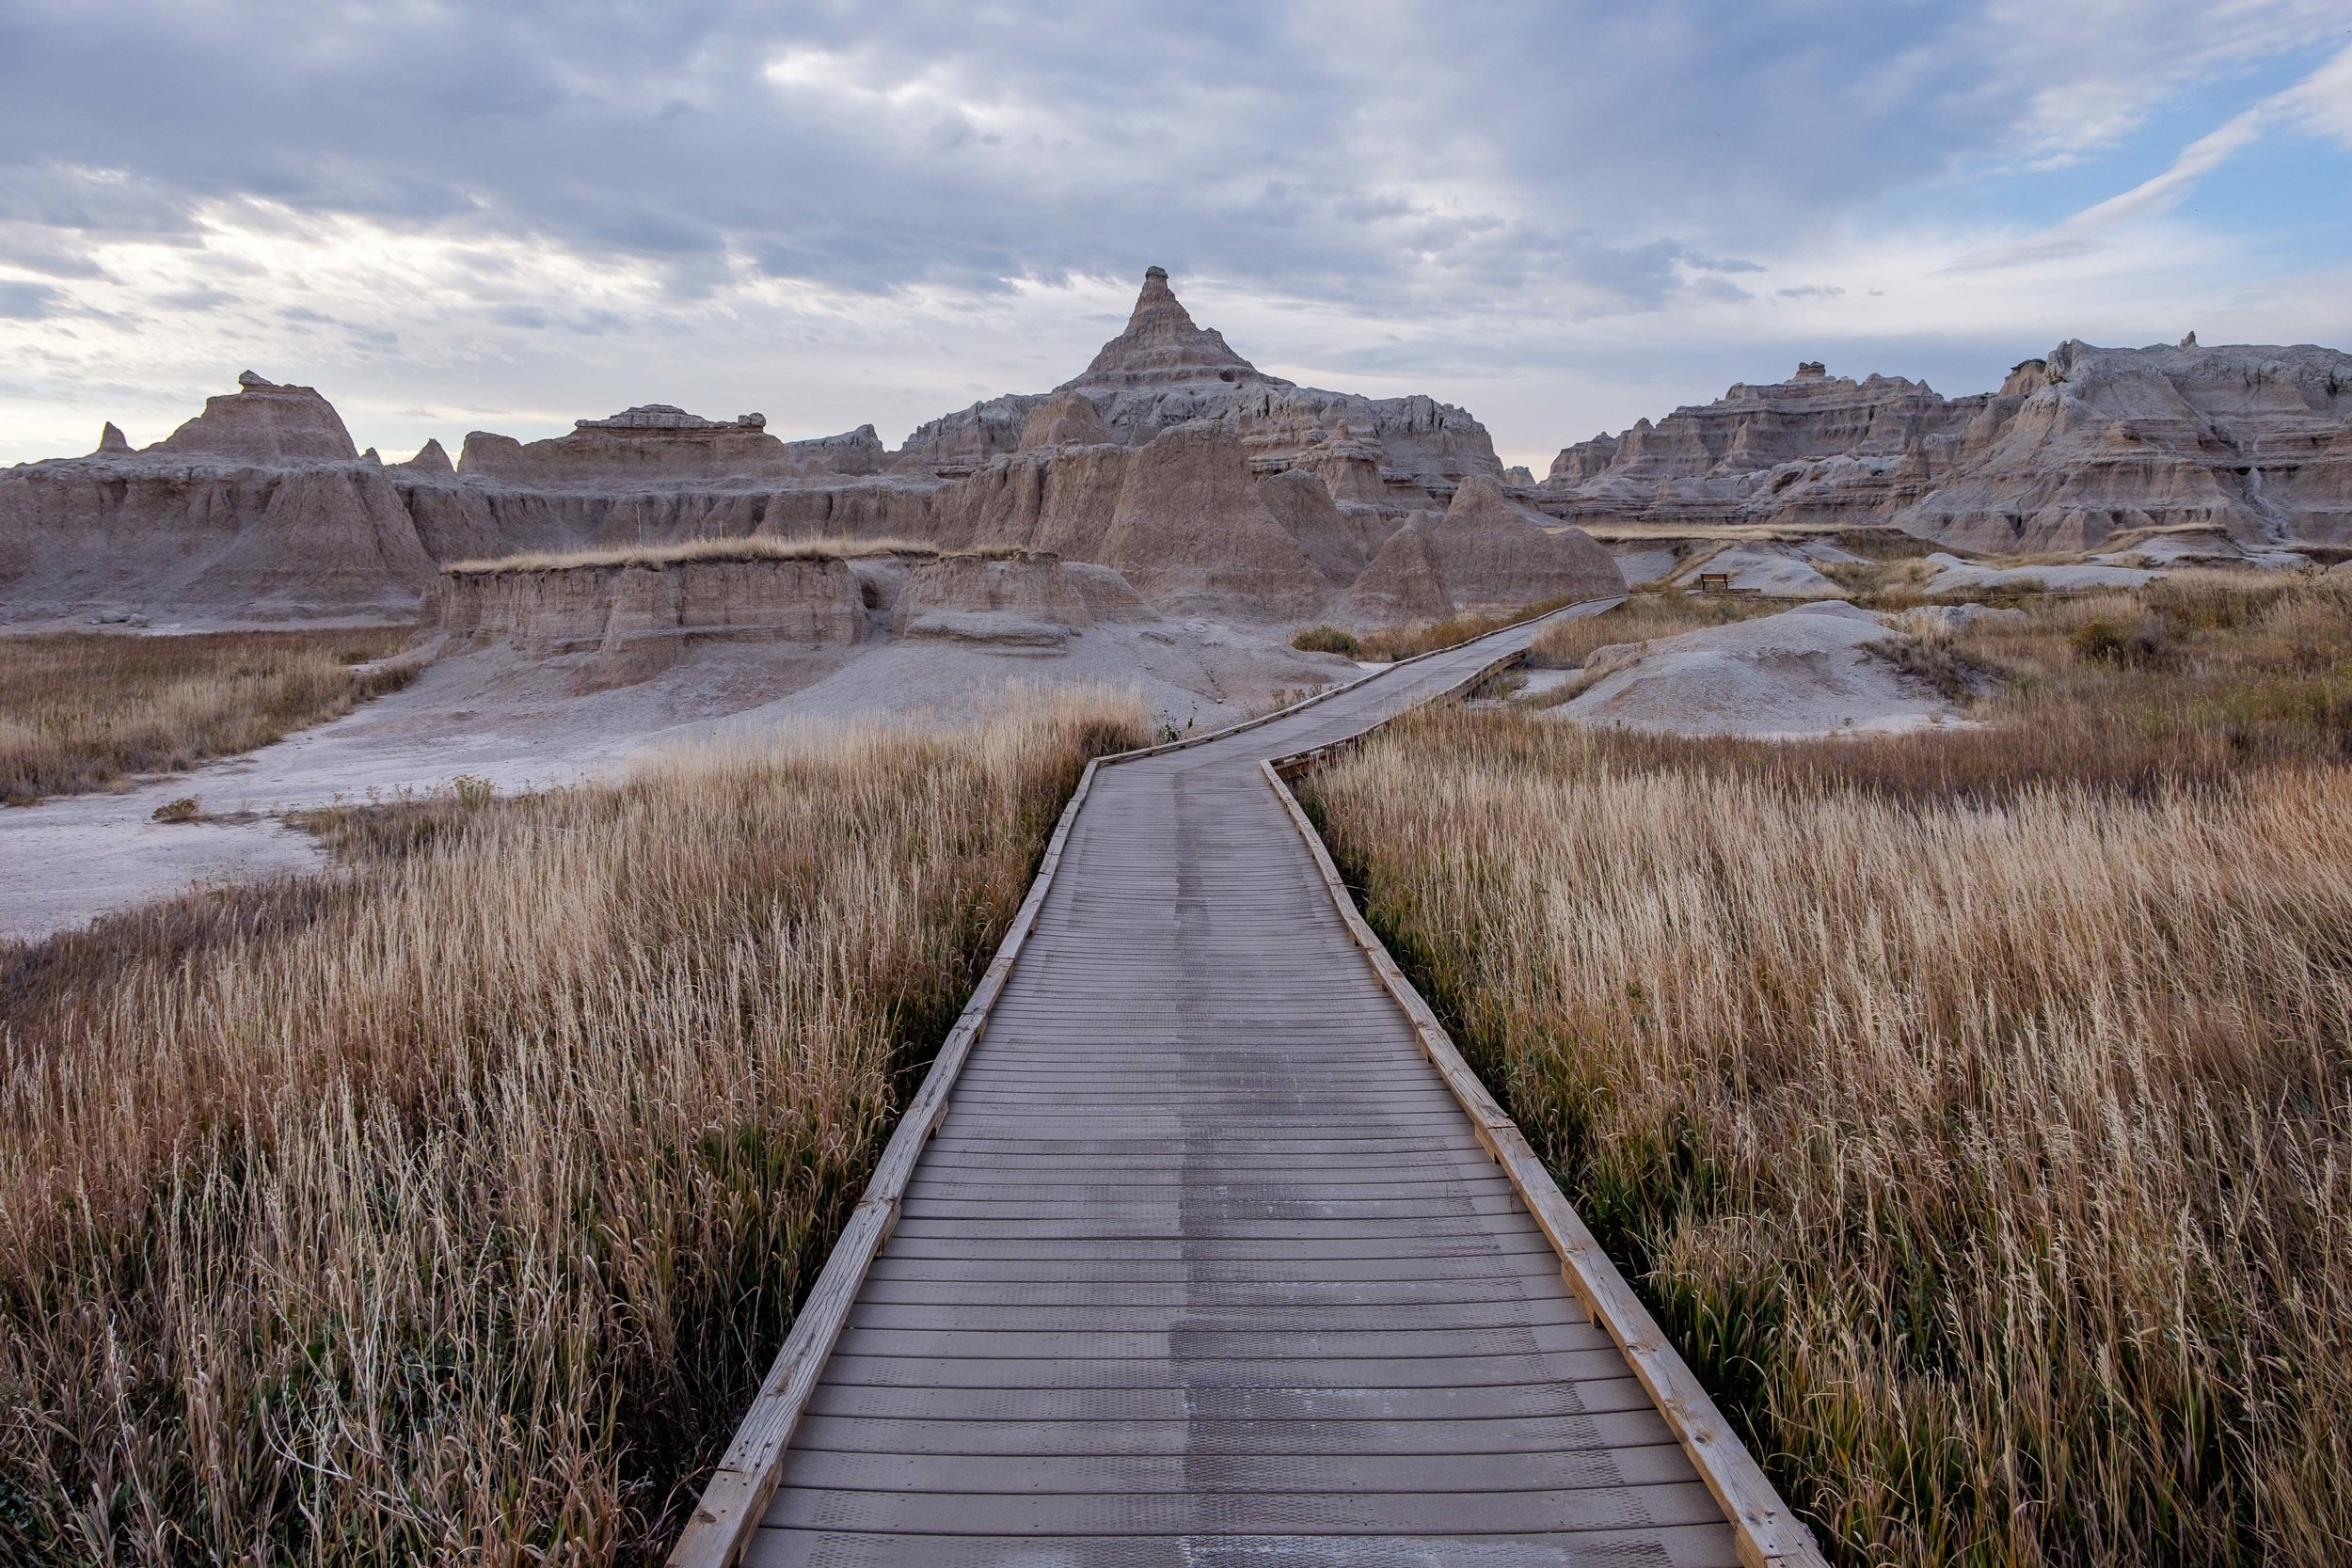 An elevated boardwalk on the Notch Trail traverses grasslands and badlands formations.